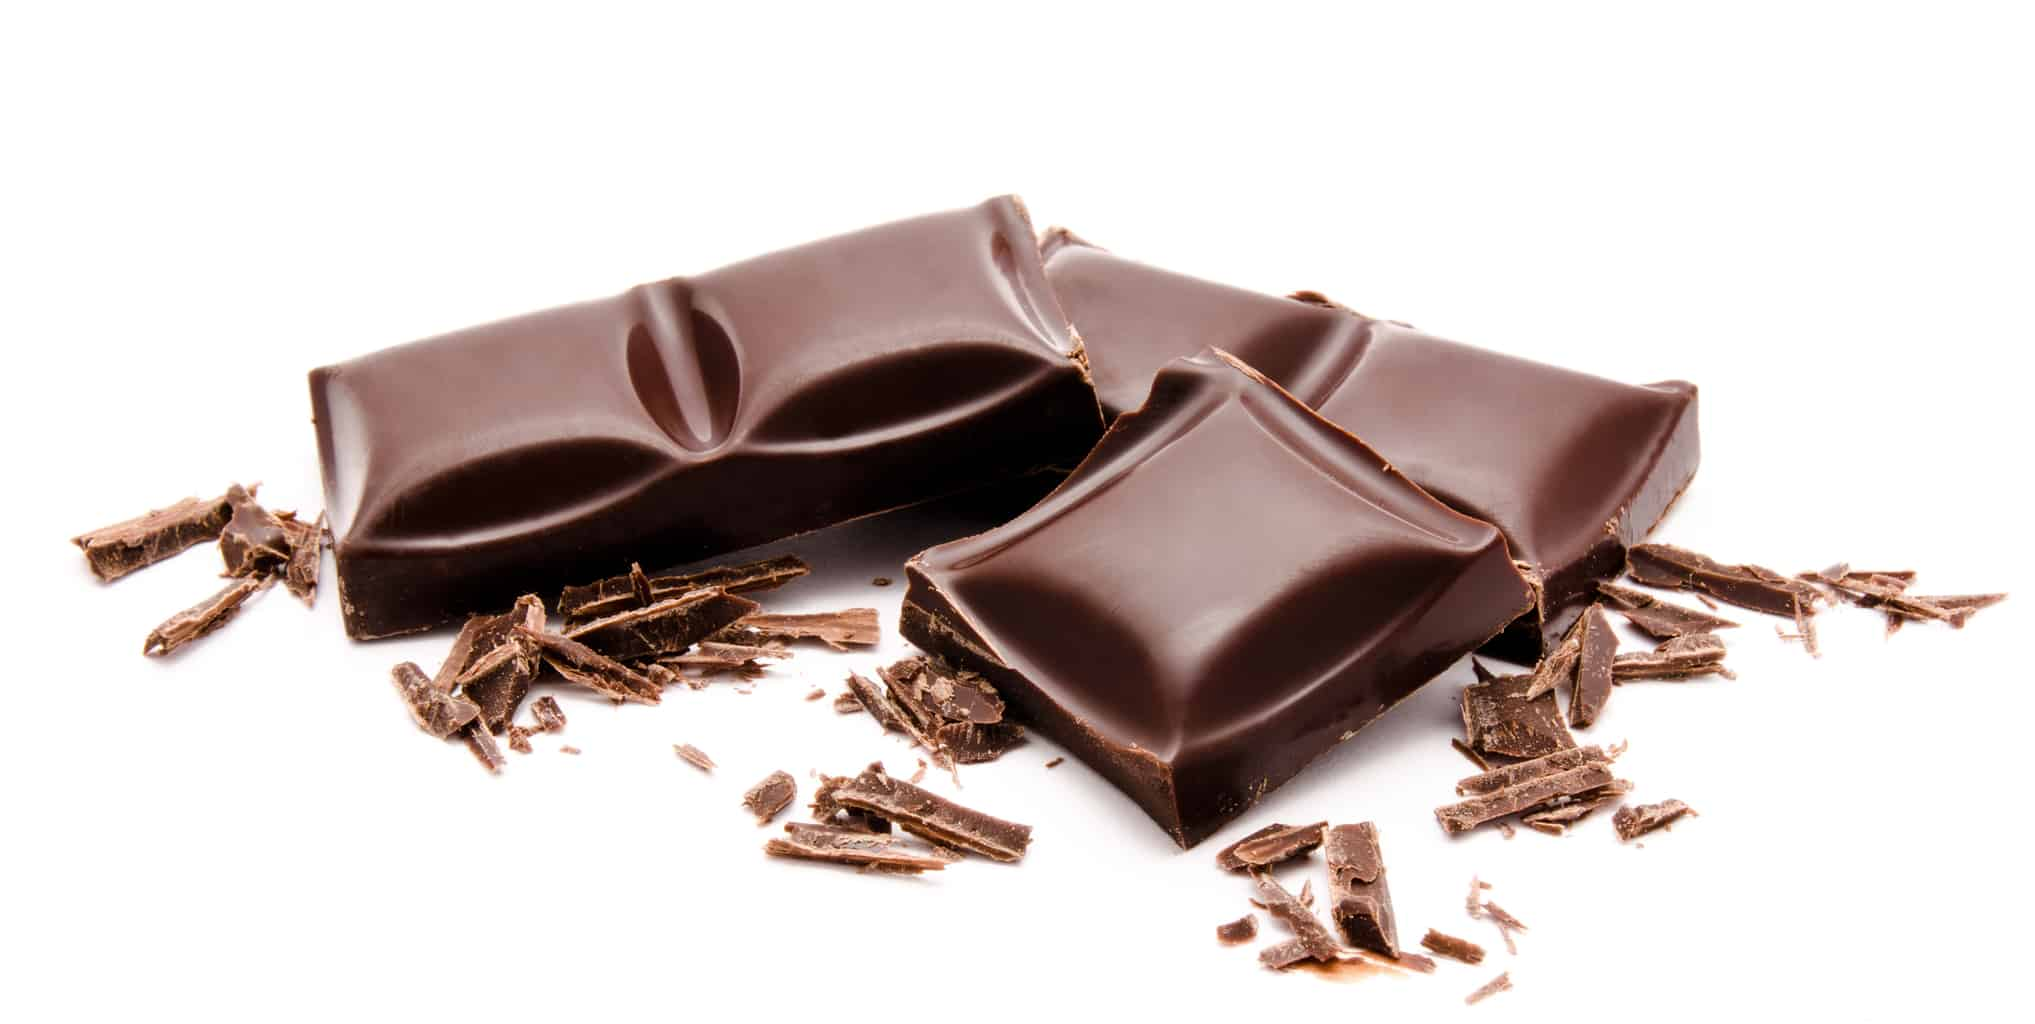 Is it true? Should you eat 3 bars of chocolate a day?